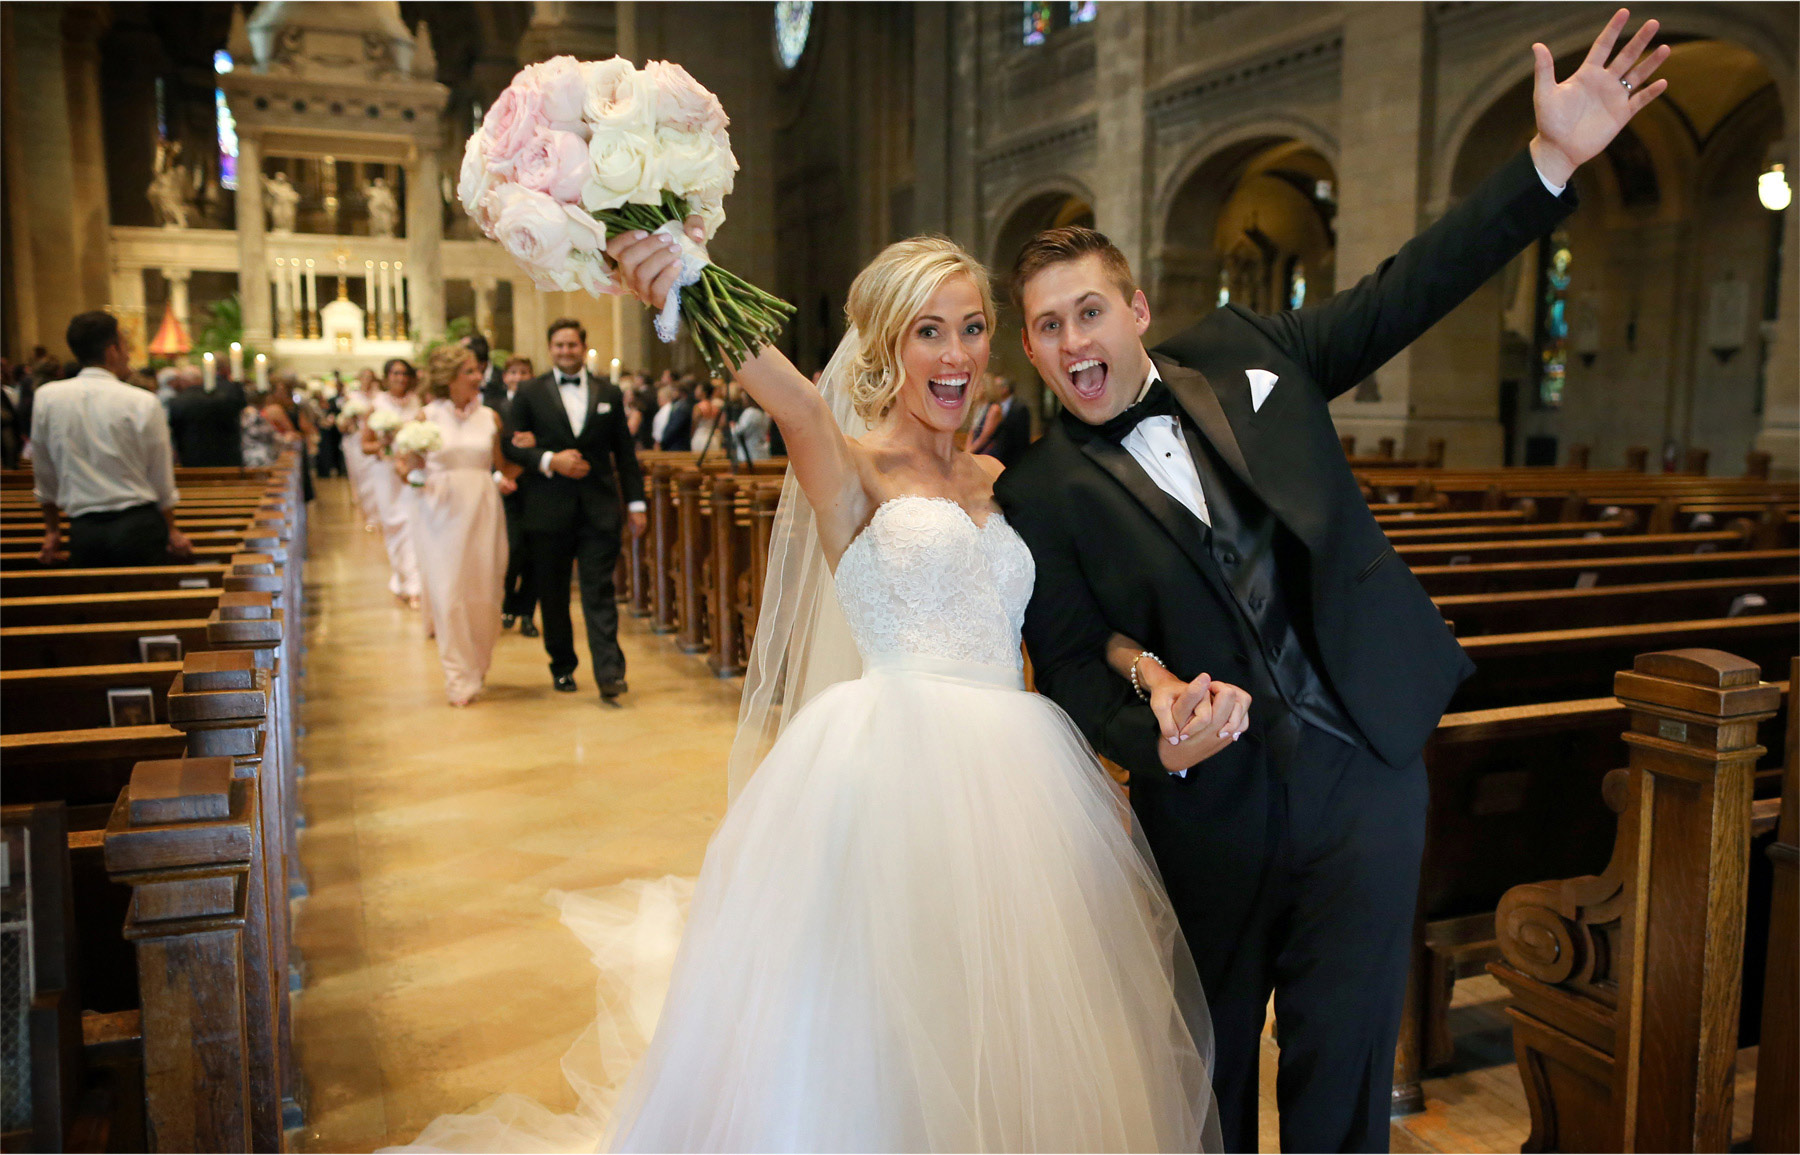 13-Minneapolis-Minnesota-Wedding-Photographer-by-Andrew-Vick-Photography-Summer-Basilica-of-Saint-Mary-Ceremony-Bride-Groom-Excitement-Emily-and-Jay.jpg